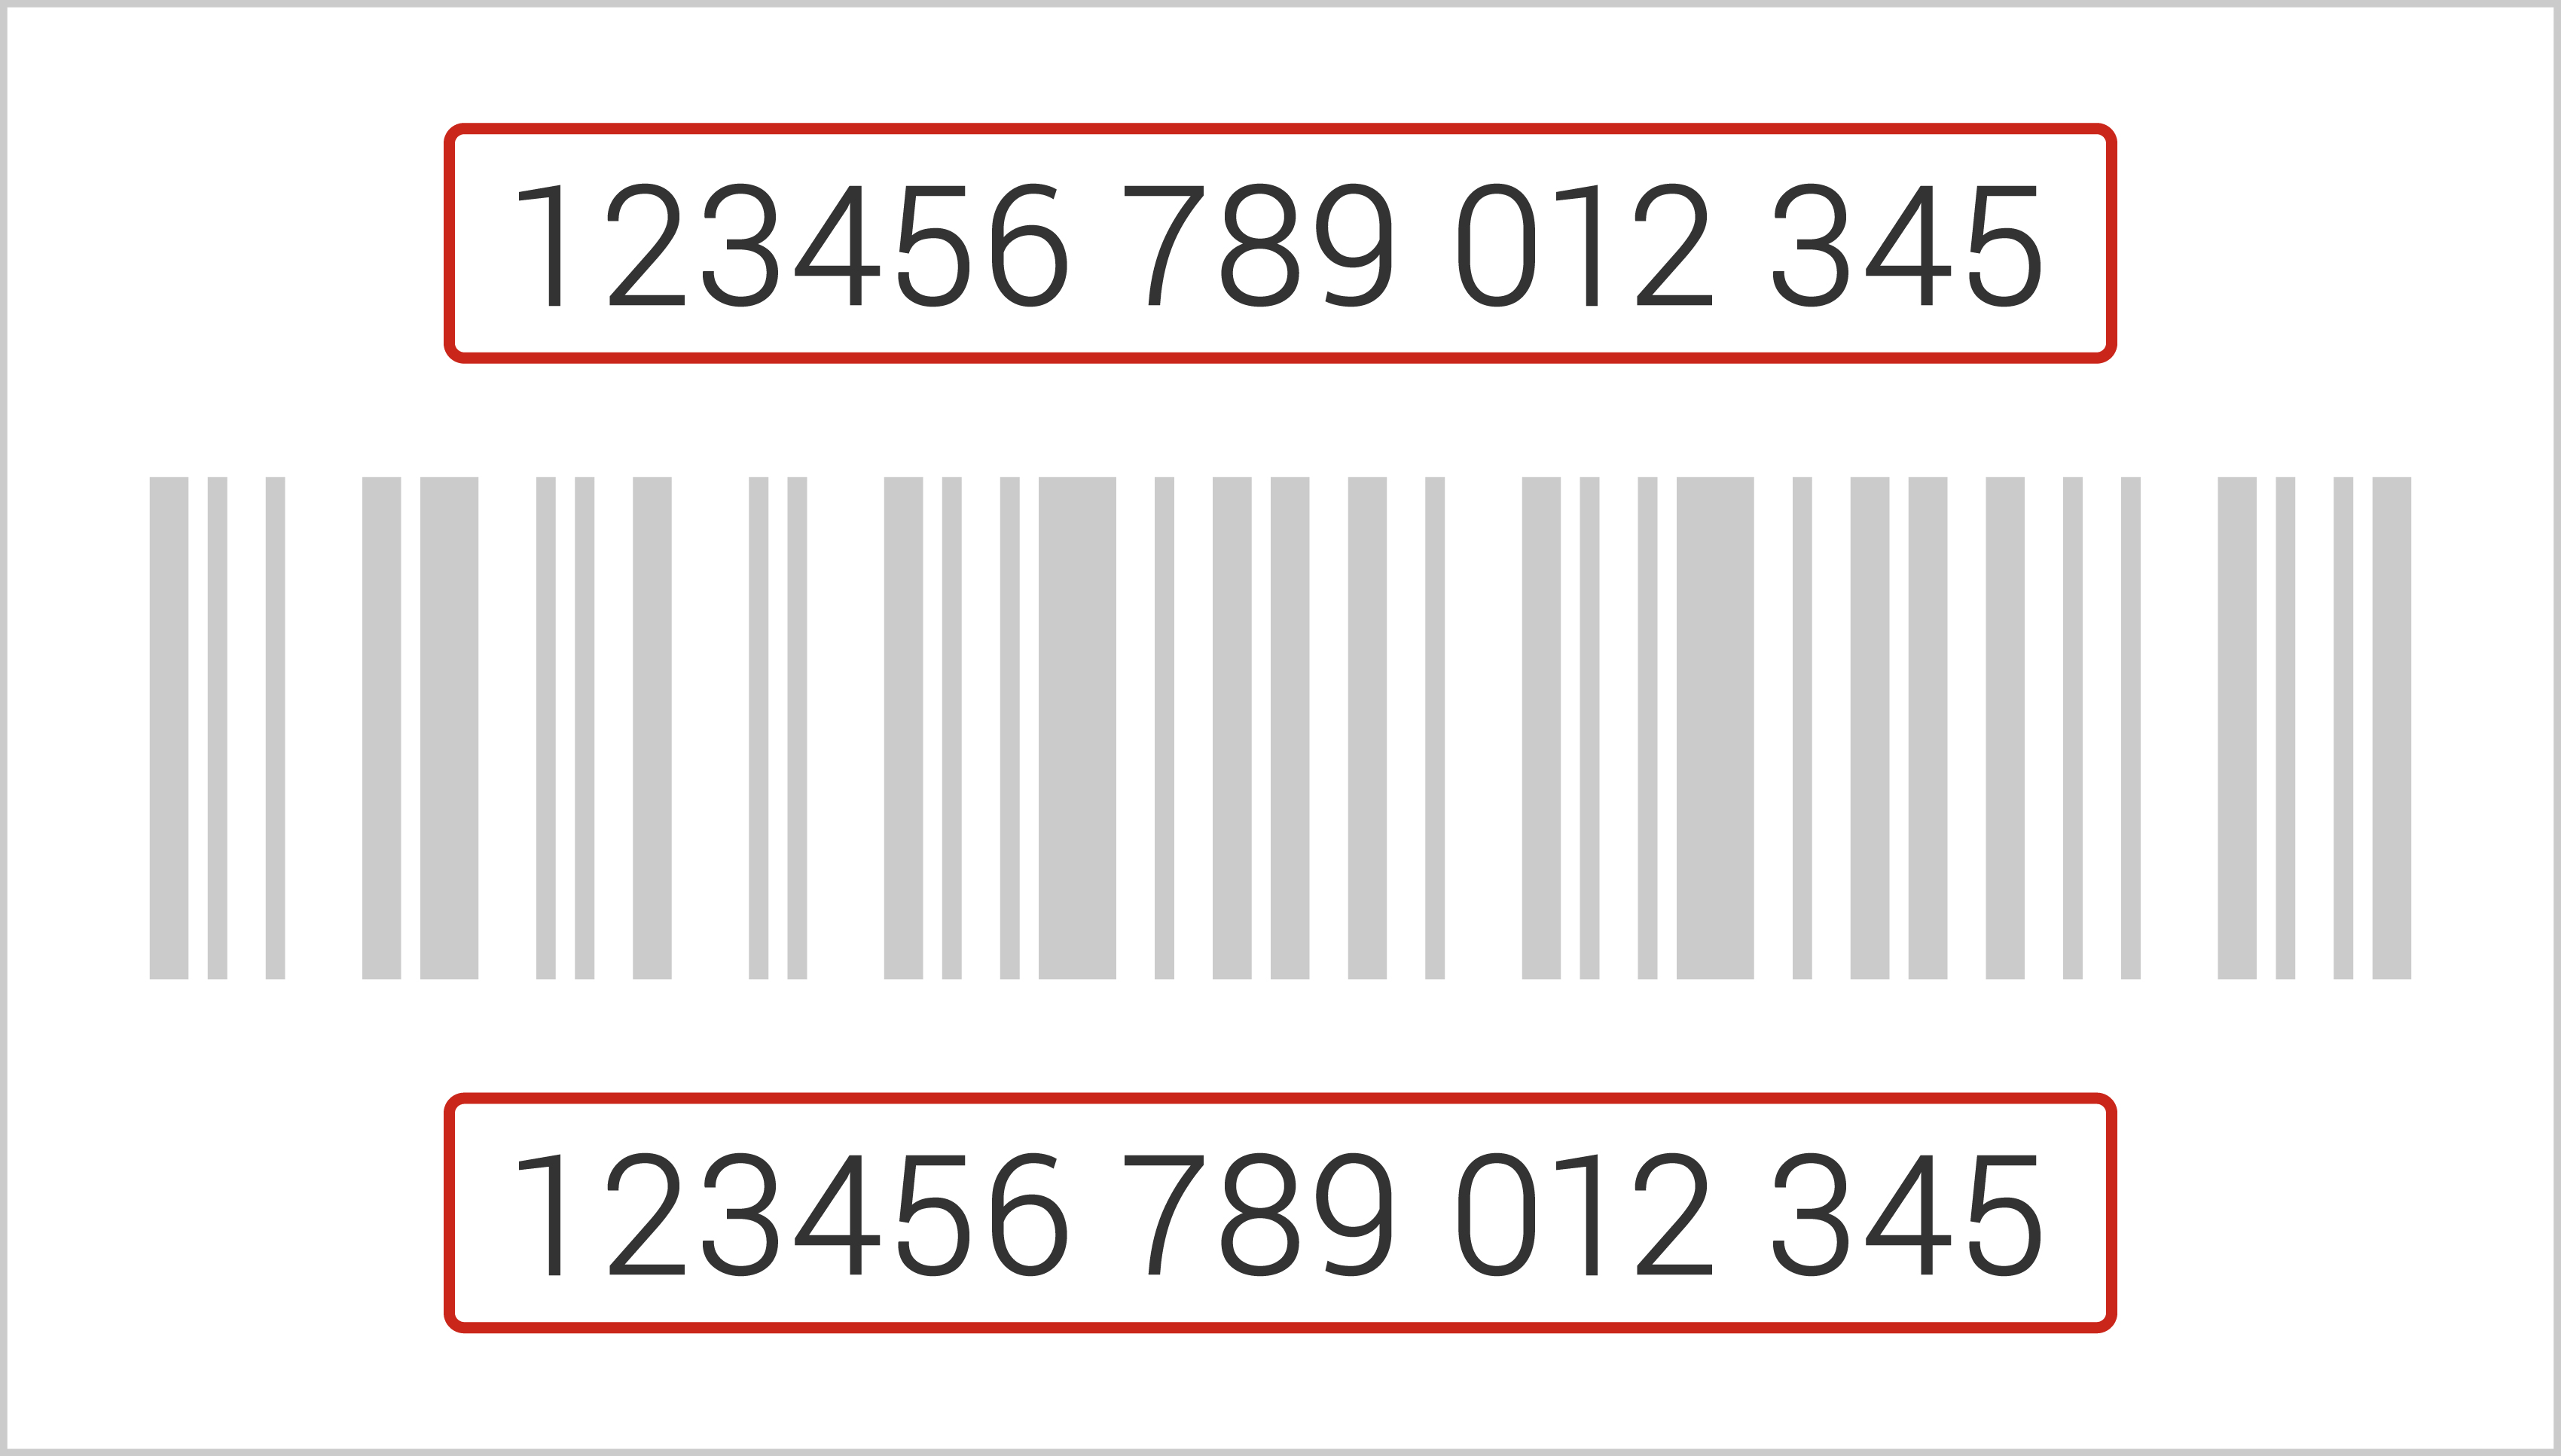 Canada post tracking number not updating cambodia dating culture